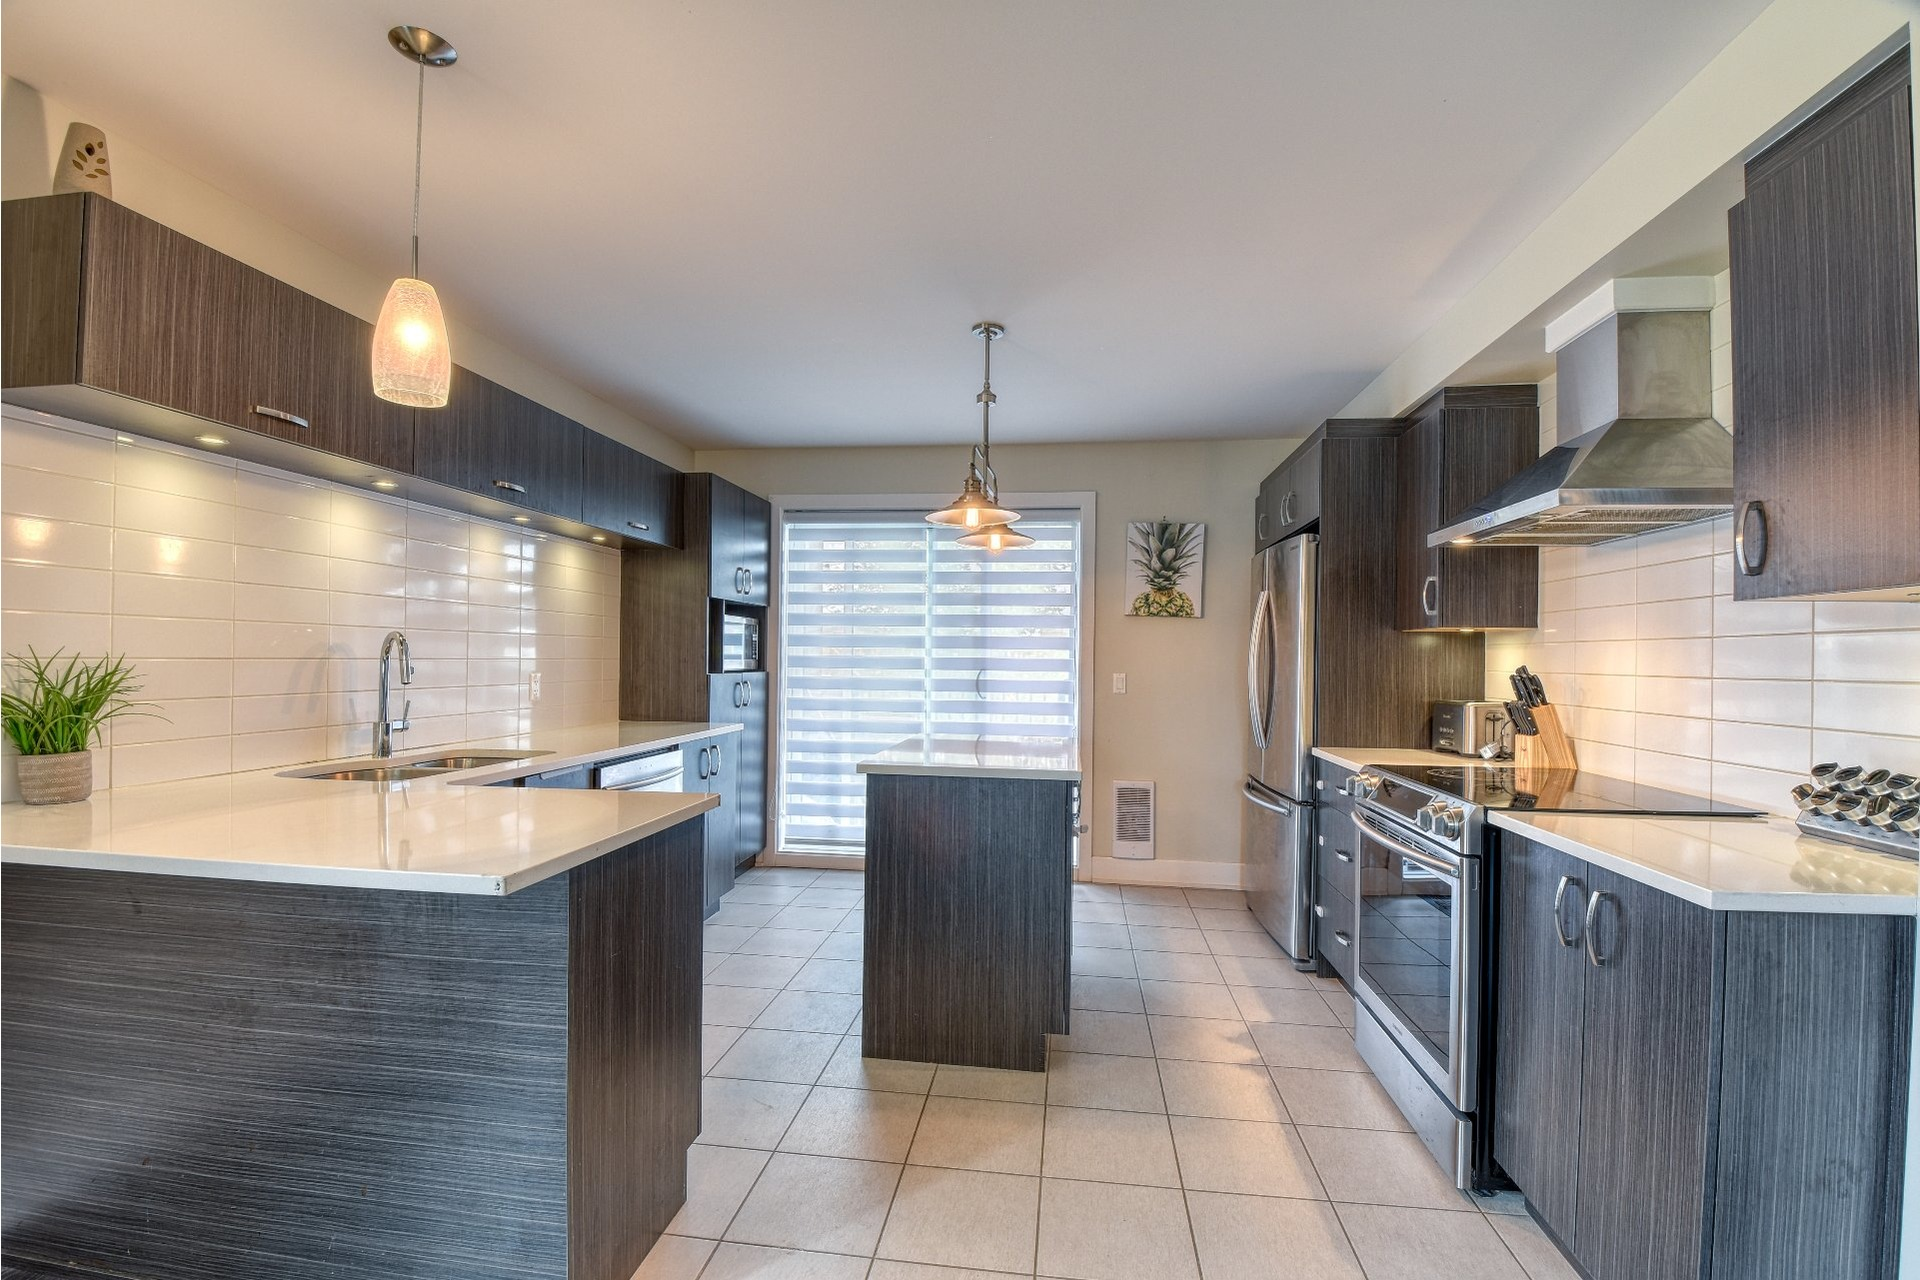 image 7 - Apartment For sale Duvernay Laval  - 6 rooms